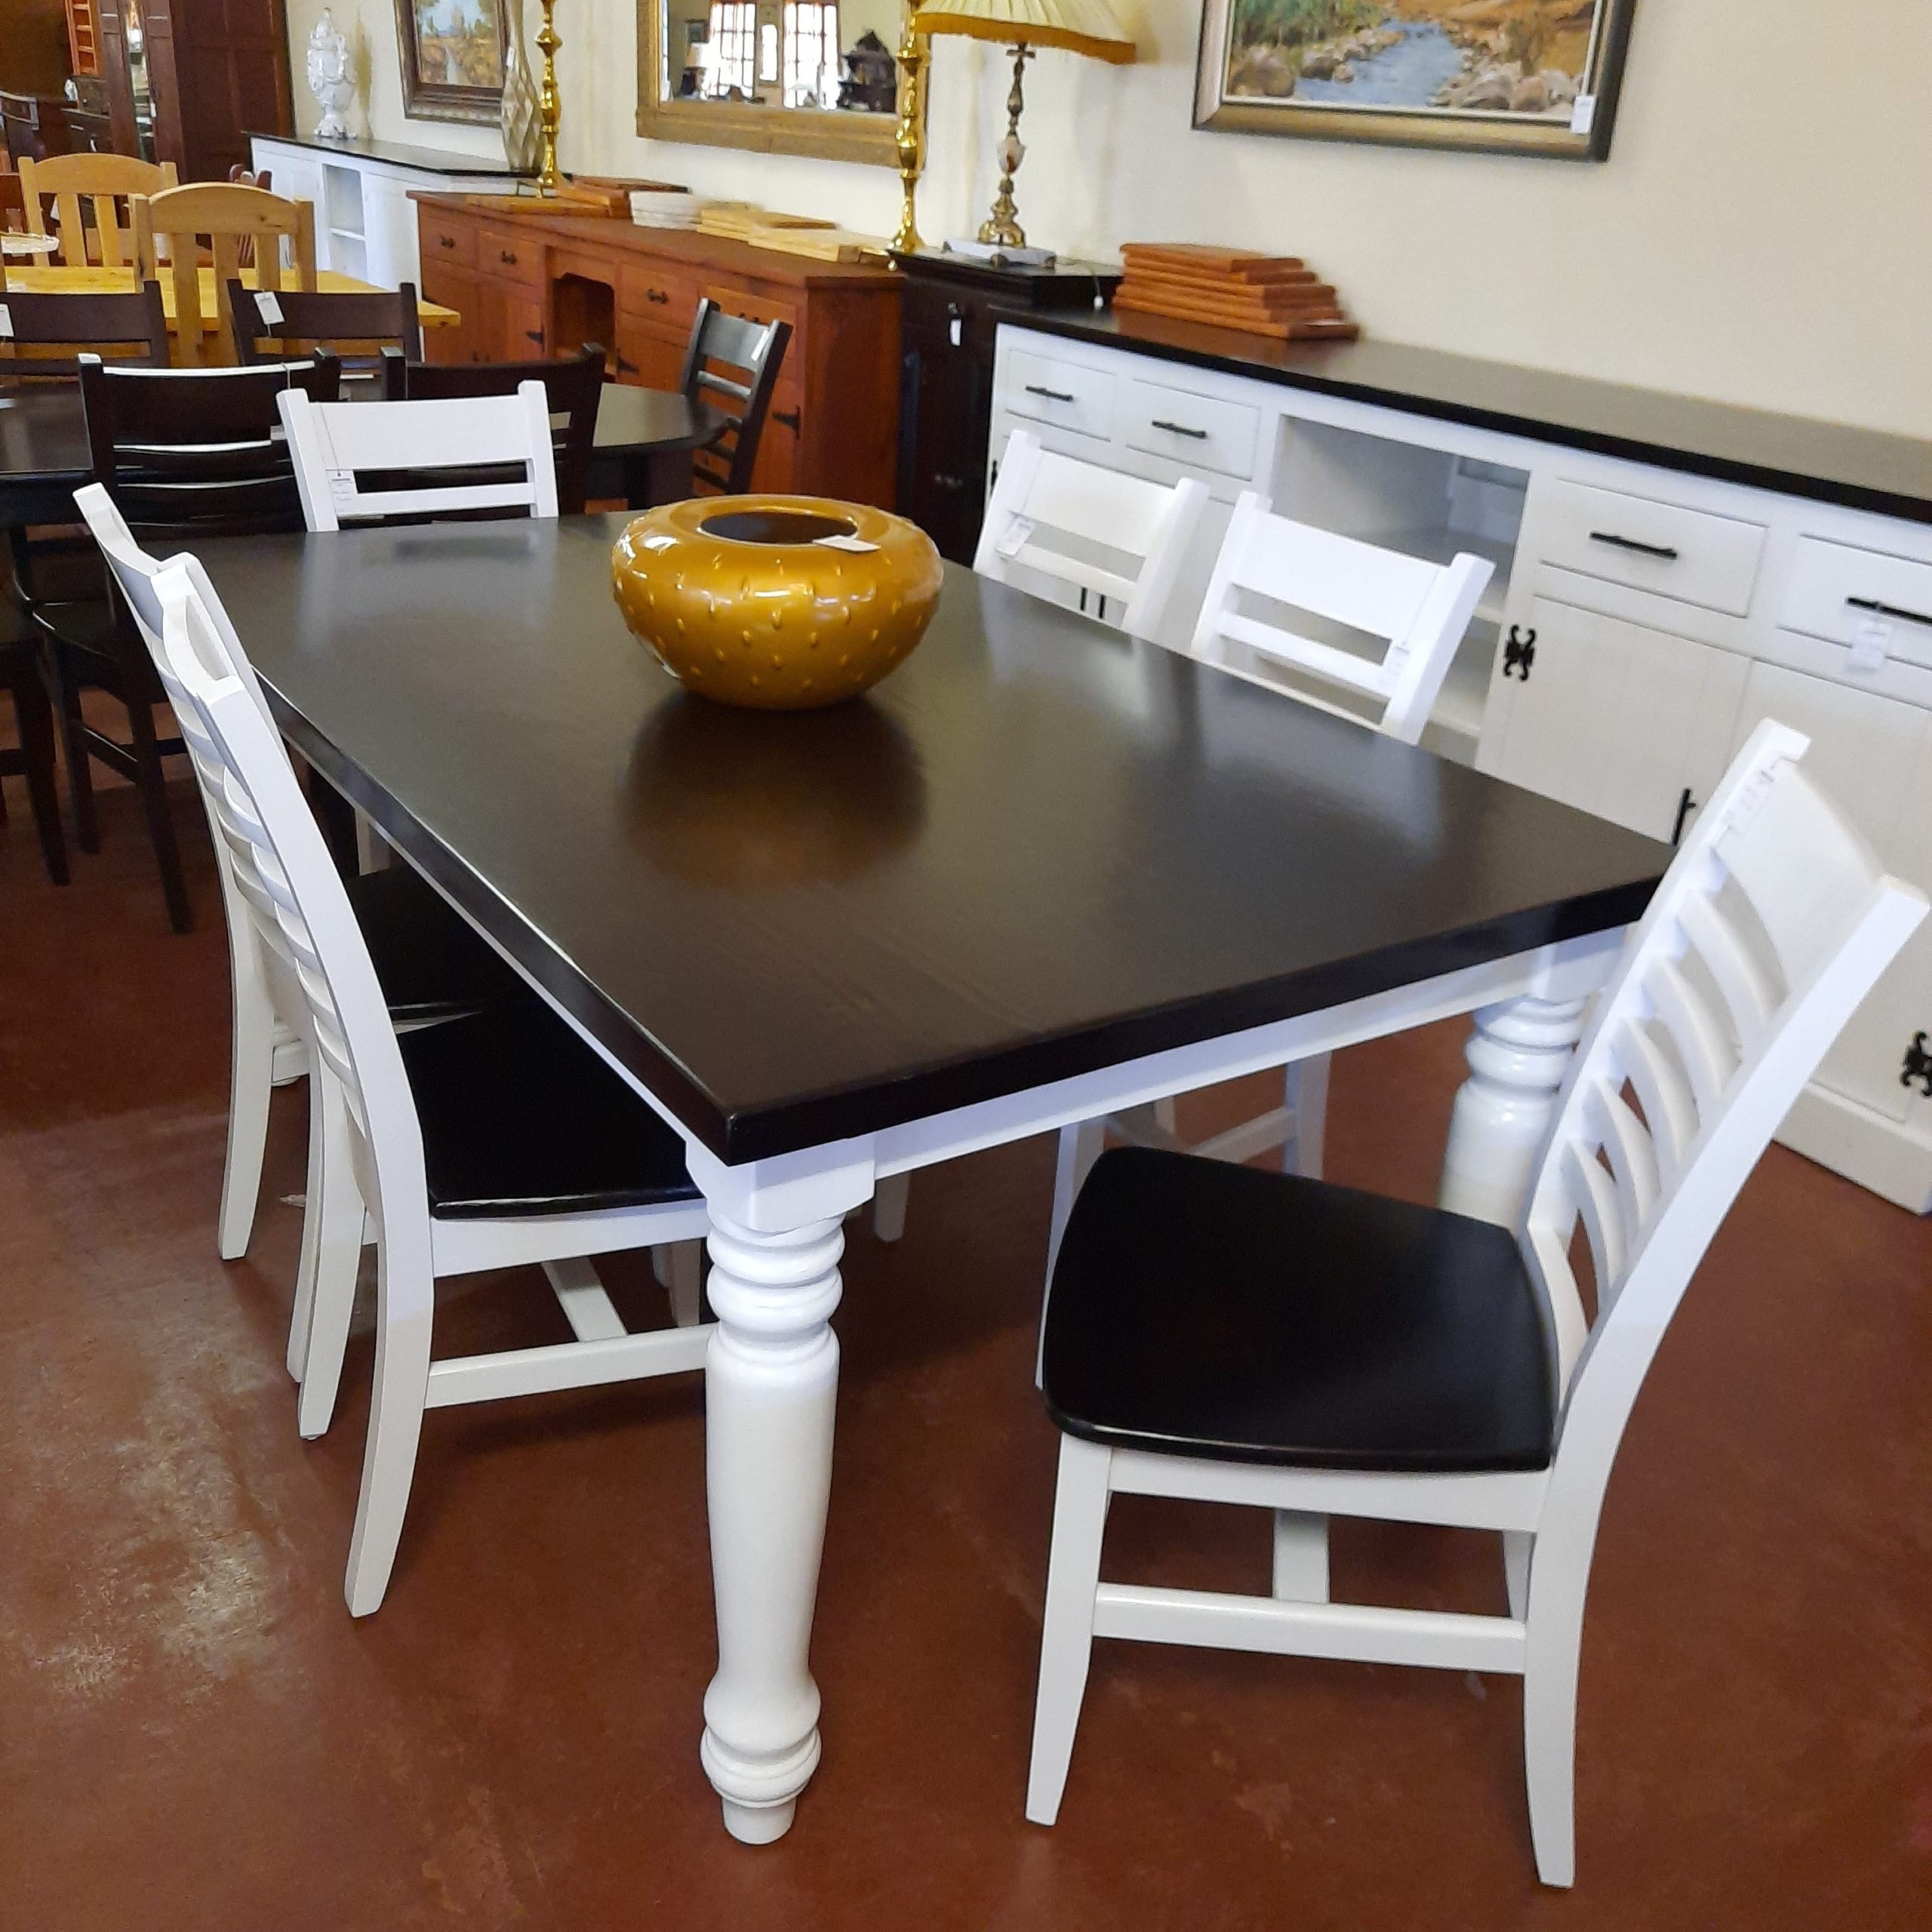 6 Seater Dining Table In Pine, Pine Dining Room Table And Chairs